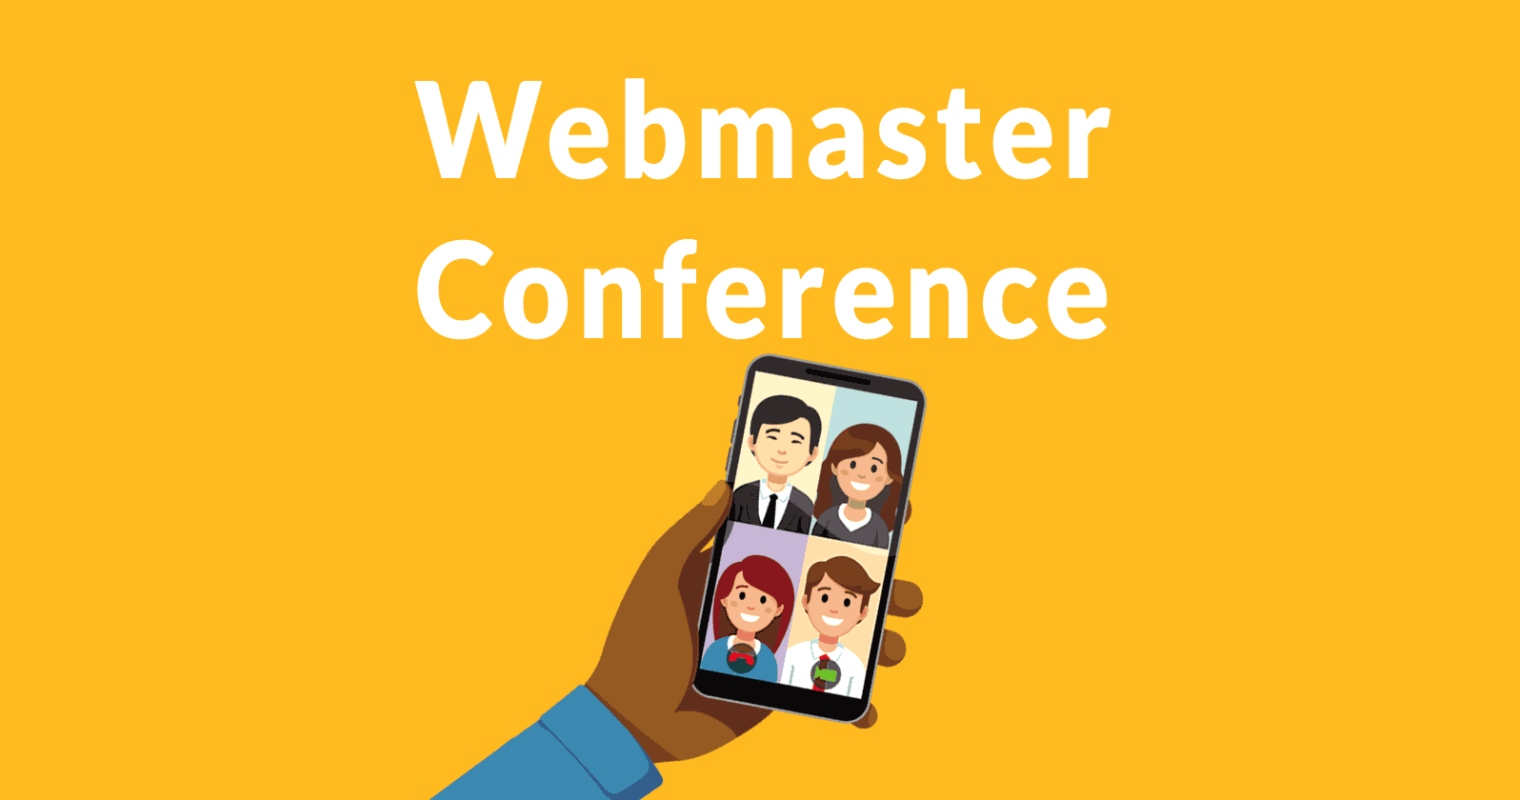 Google Announces Webmaster Conference at the Googleplex